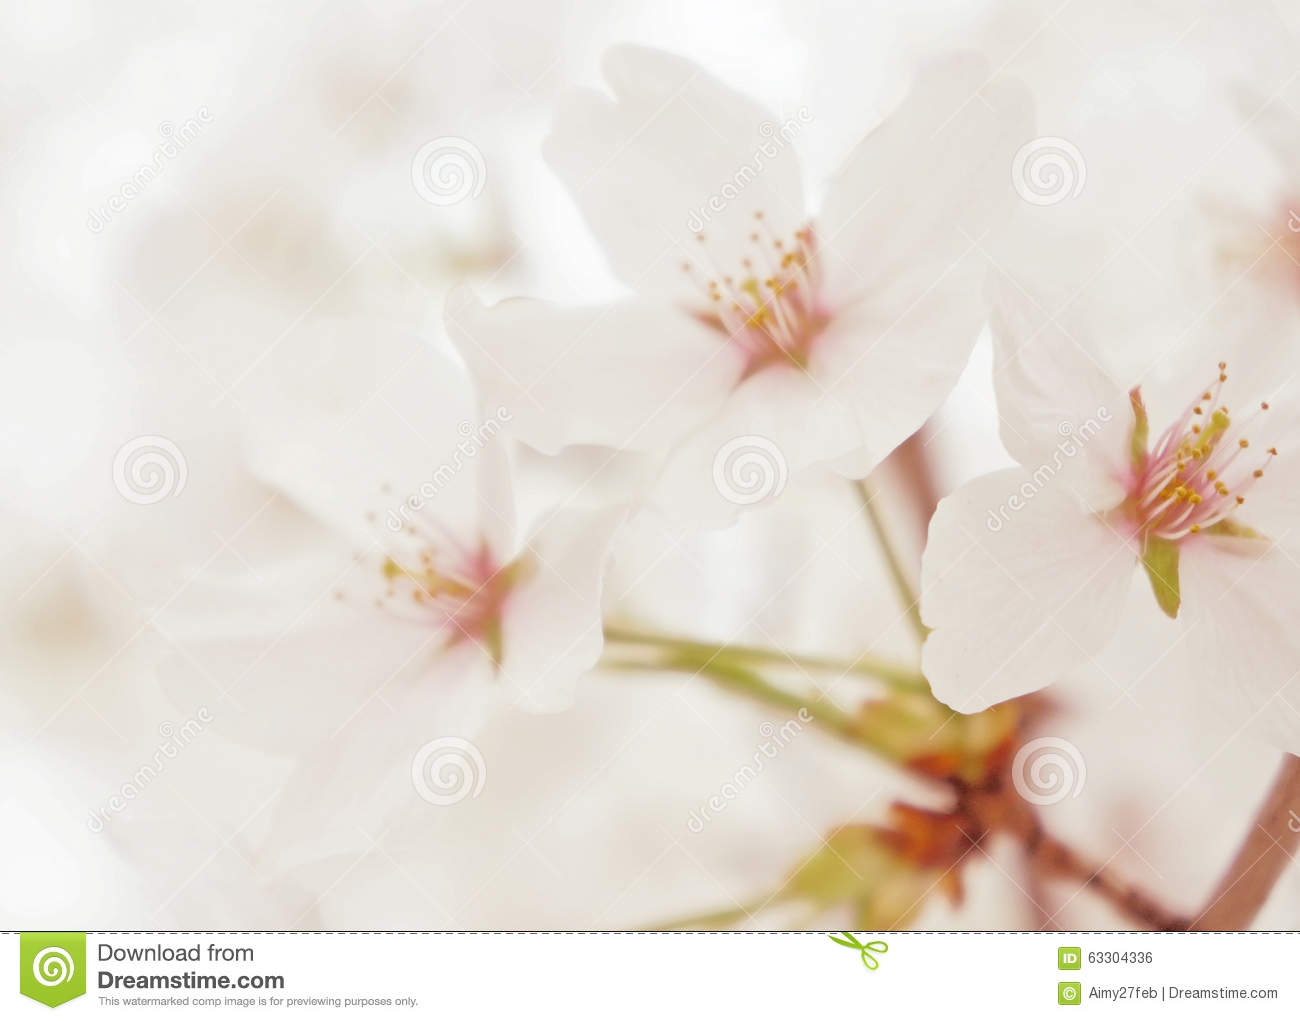 Spring white blossom flower close up stock photo image of bloom download comp mightylinksfo